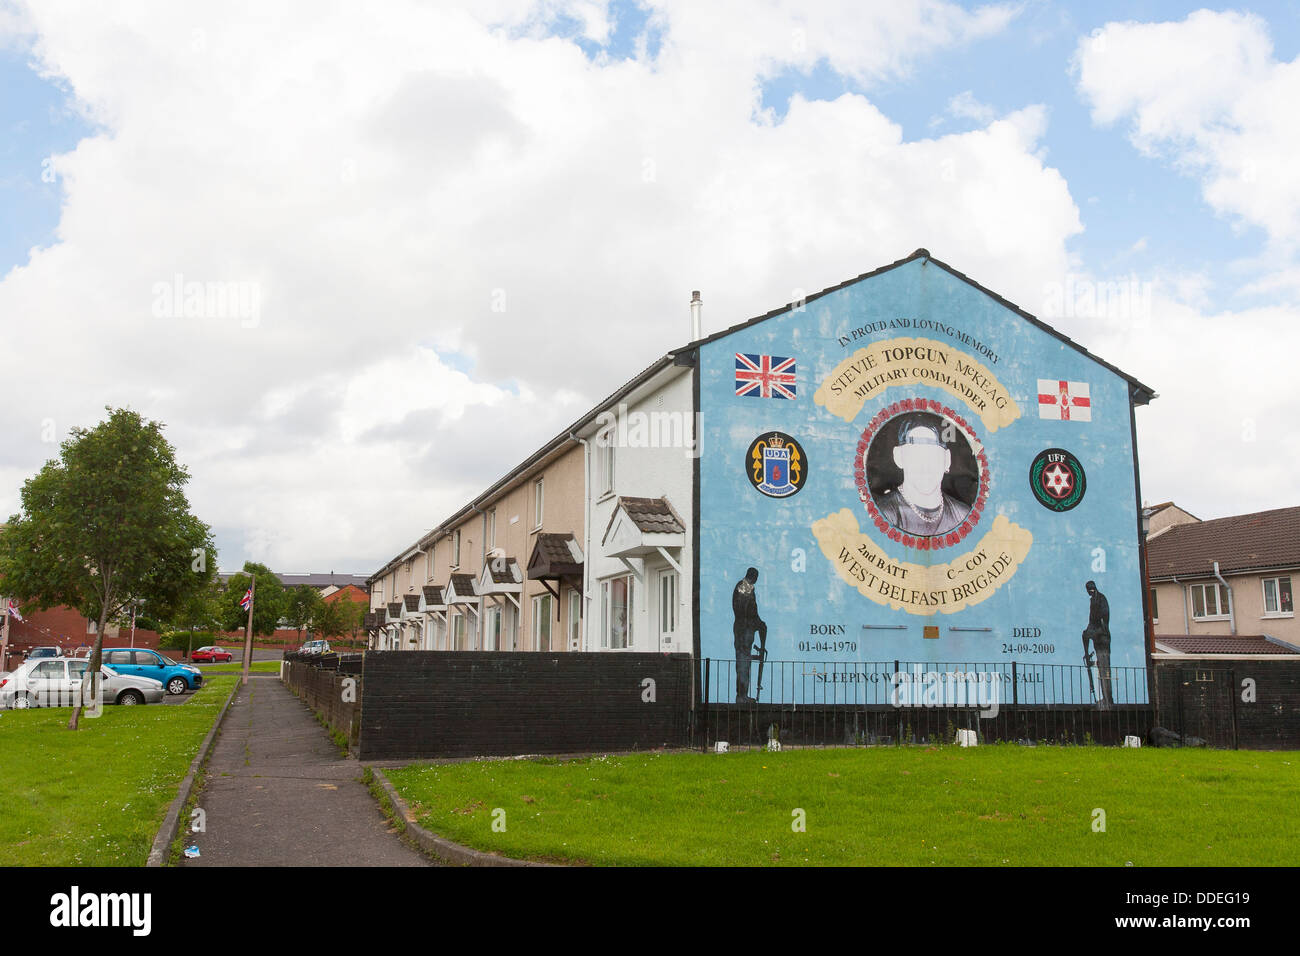 A mural in Belfast commemorates Stevie topgun Mckeag of the west Belfast Brigade a commander during the troubles. - Stock Image